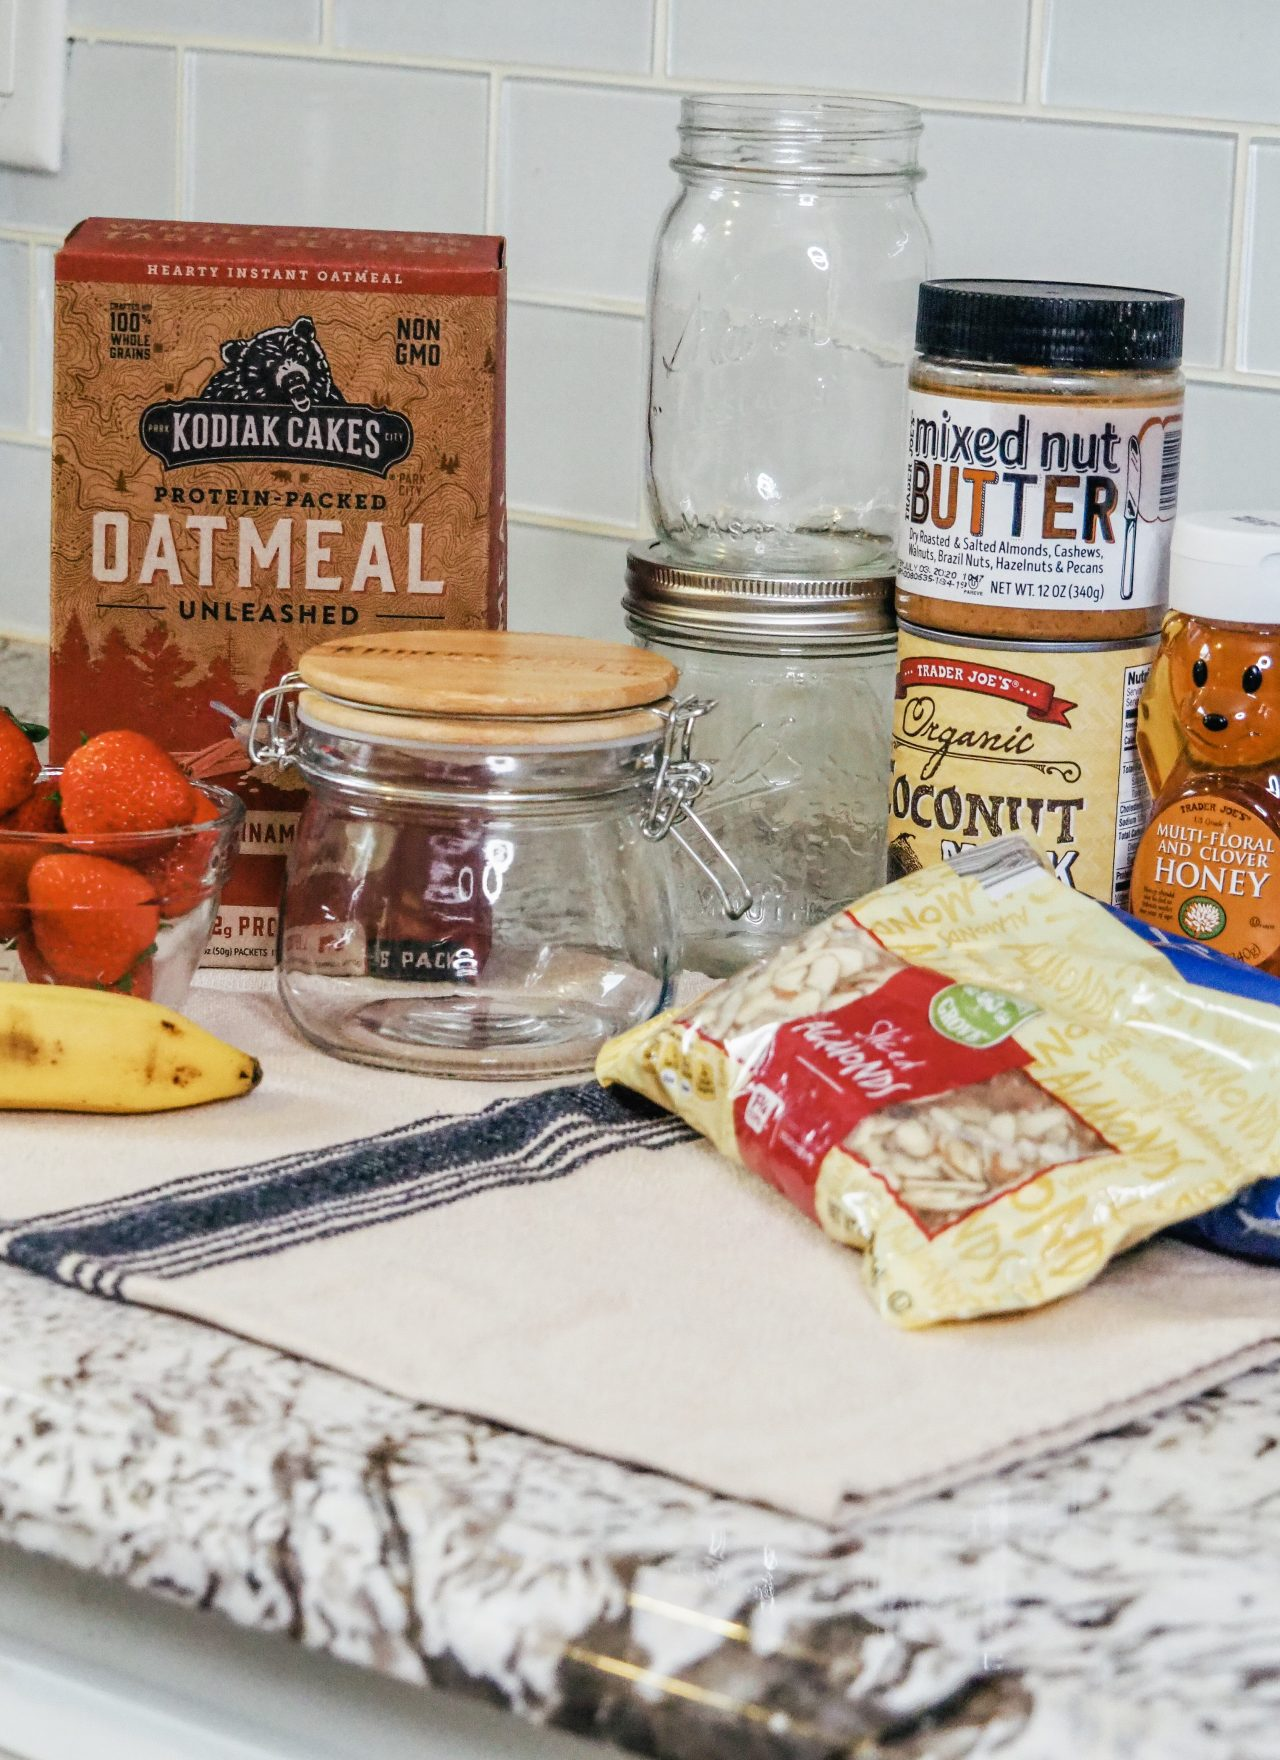 9 ingredients for easy overnight oats